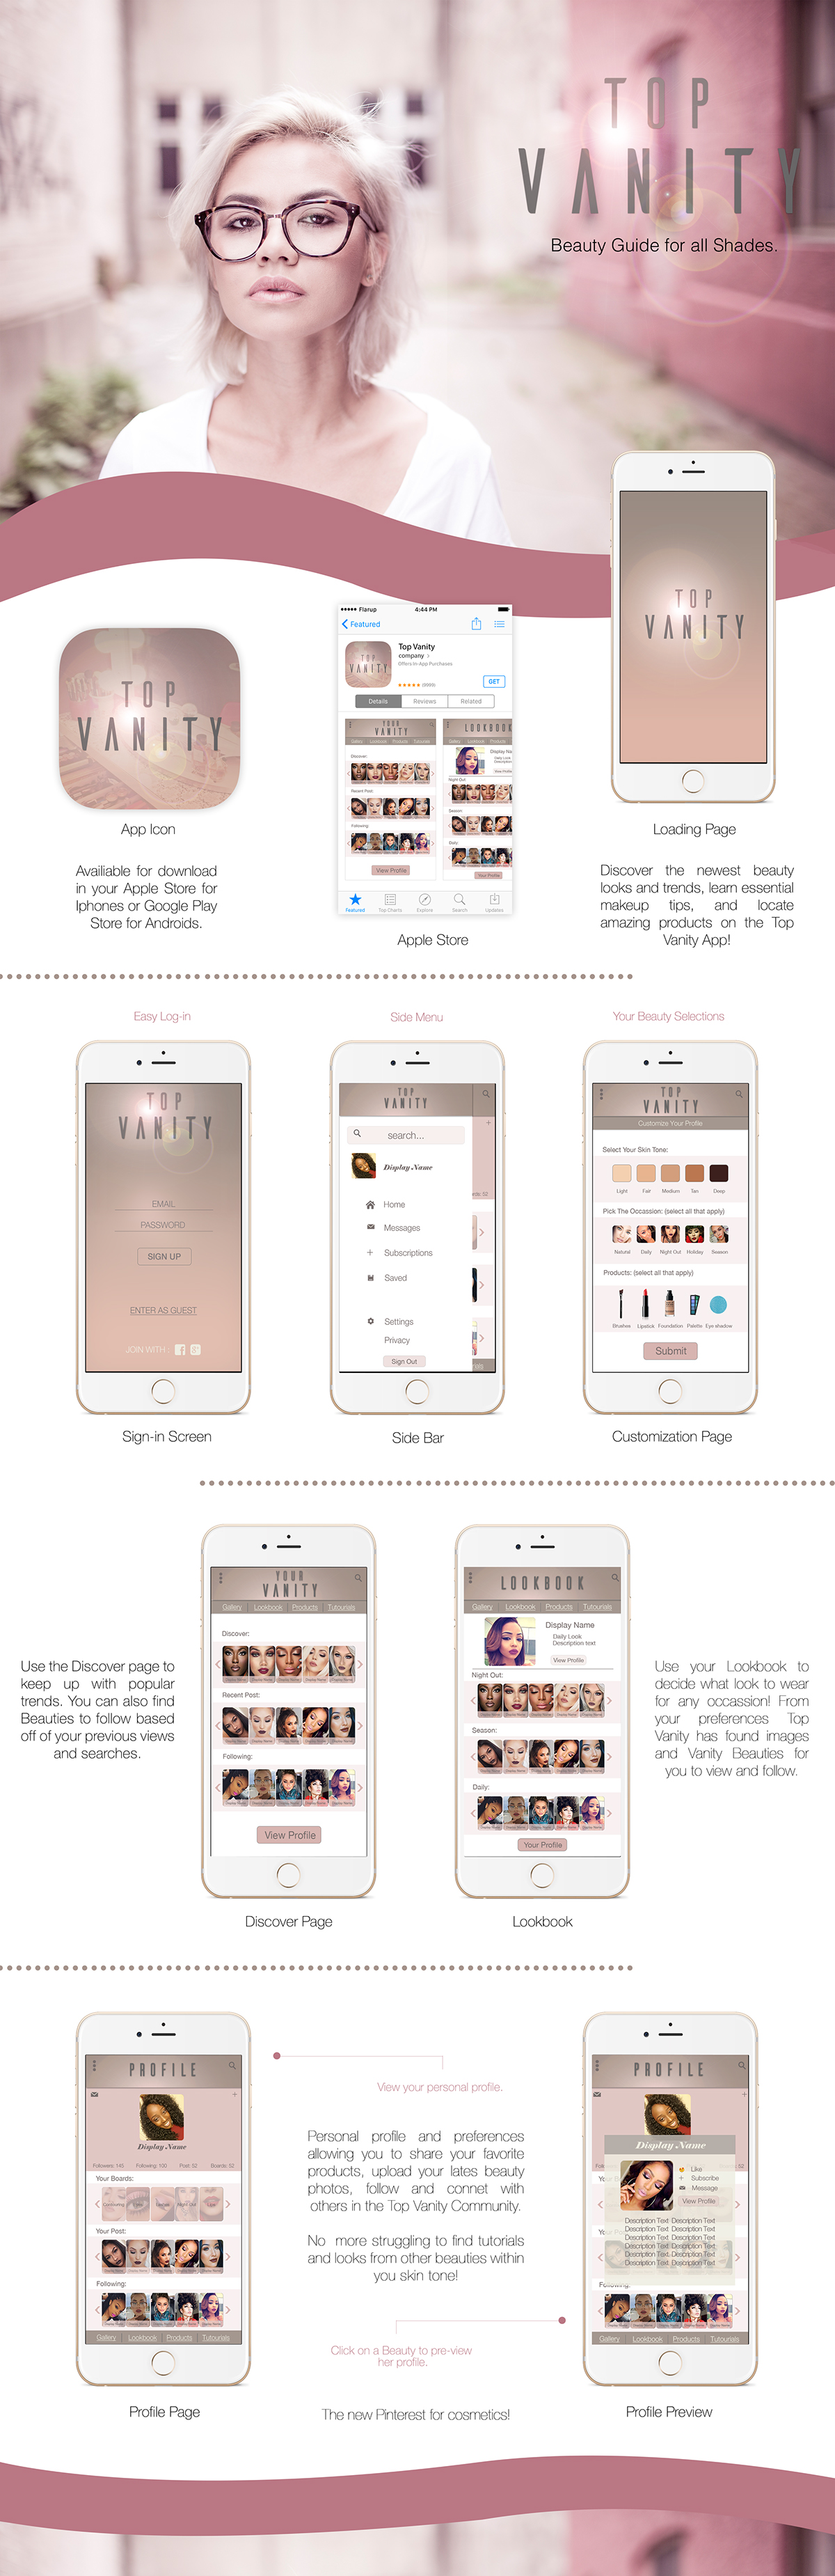 Top Vanity - Cosmetic Mobile App Design on Behance